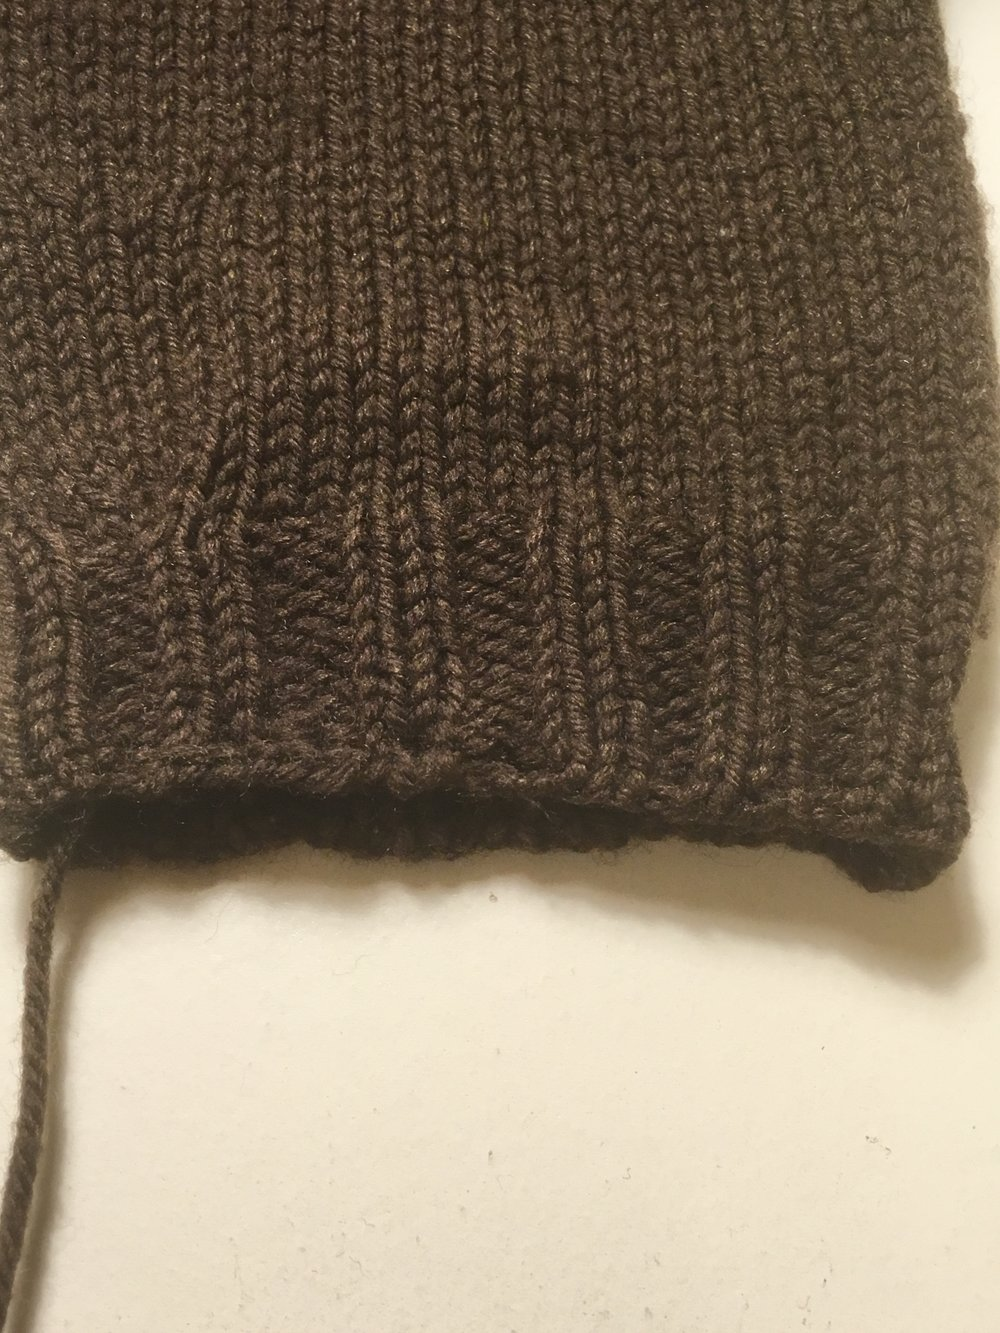 The final edge still shows the horizontal direction of the sewn bindoff versus the curved edge of the original tubular bind-off, but it still looks really good overall and most people won't even notice the repair.